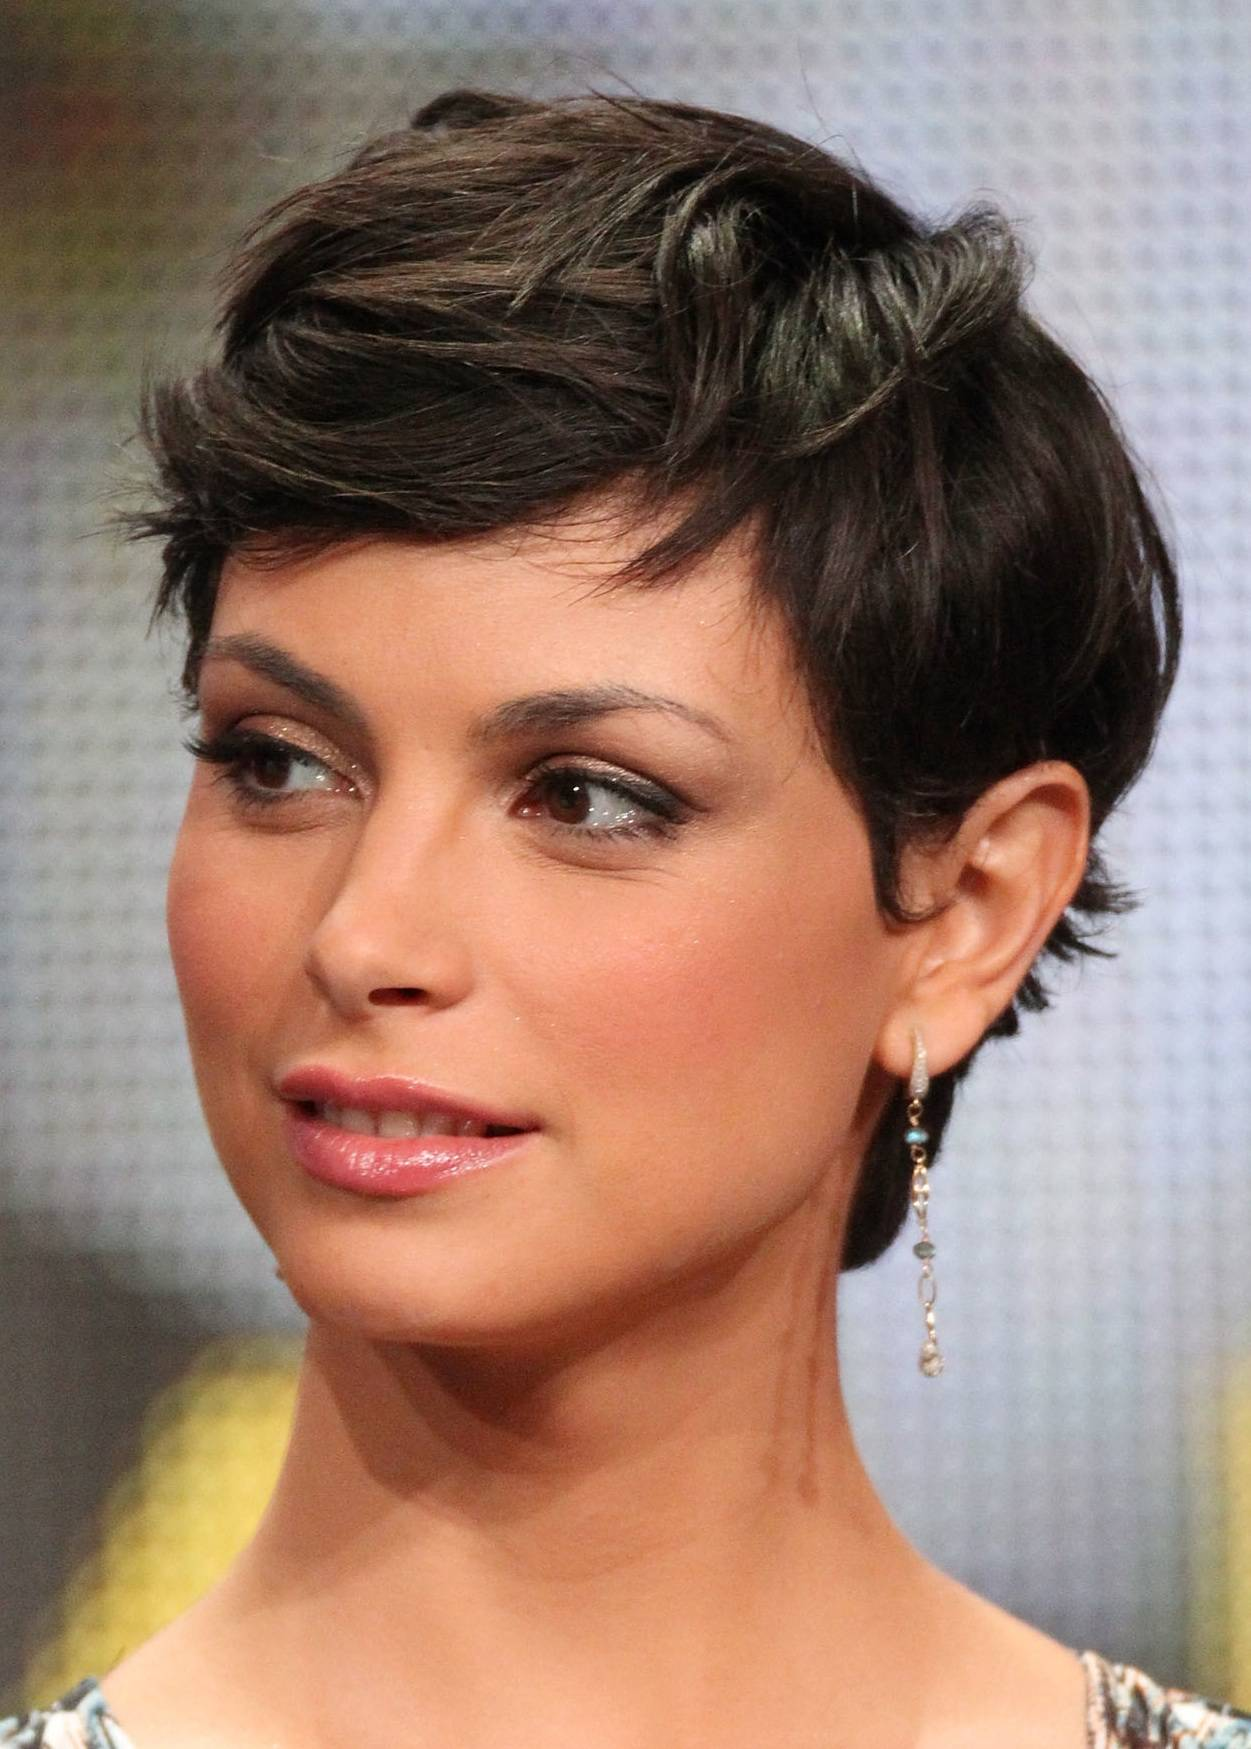 Short Pixie Celebrity Hairstyle For Women - Latest Hair Styles ...